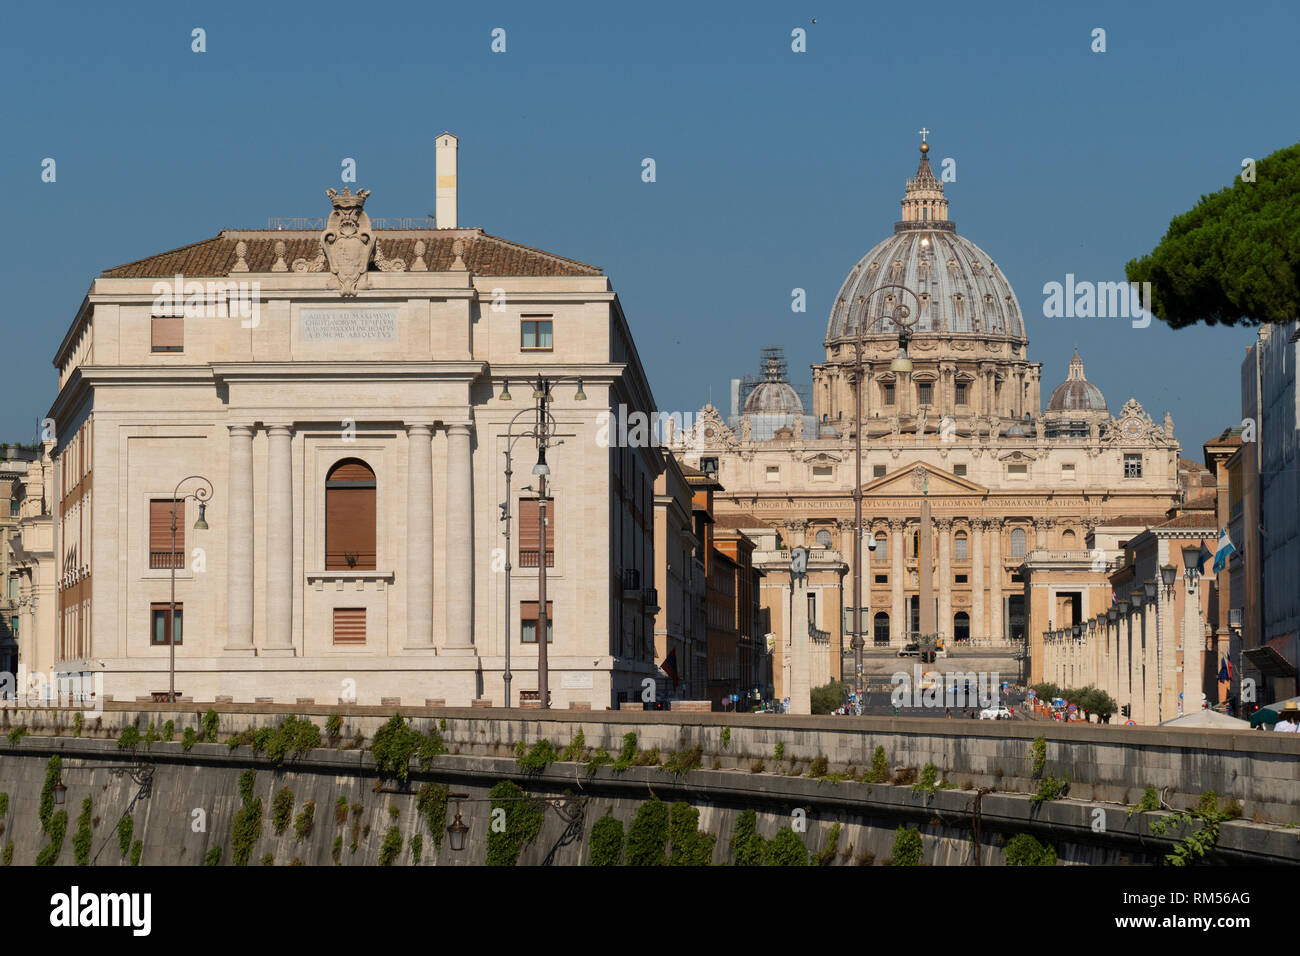 Ospedale di Santo Spirito in Sassia and St. Peter's Basilica, San Pietro in Vaticano, Papal Basilica of St. Peter in the Vatican, Rome, Italy - Stock Image